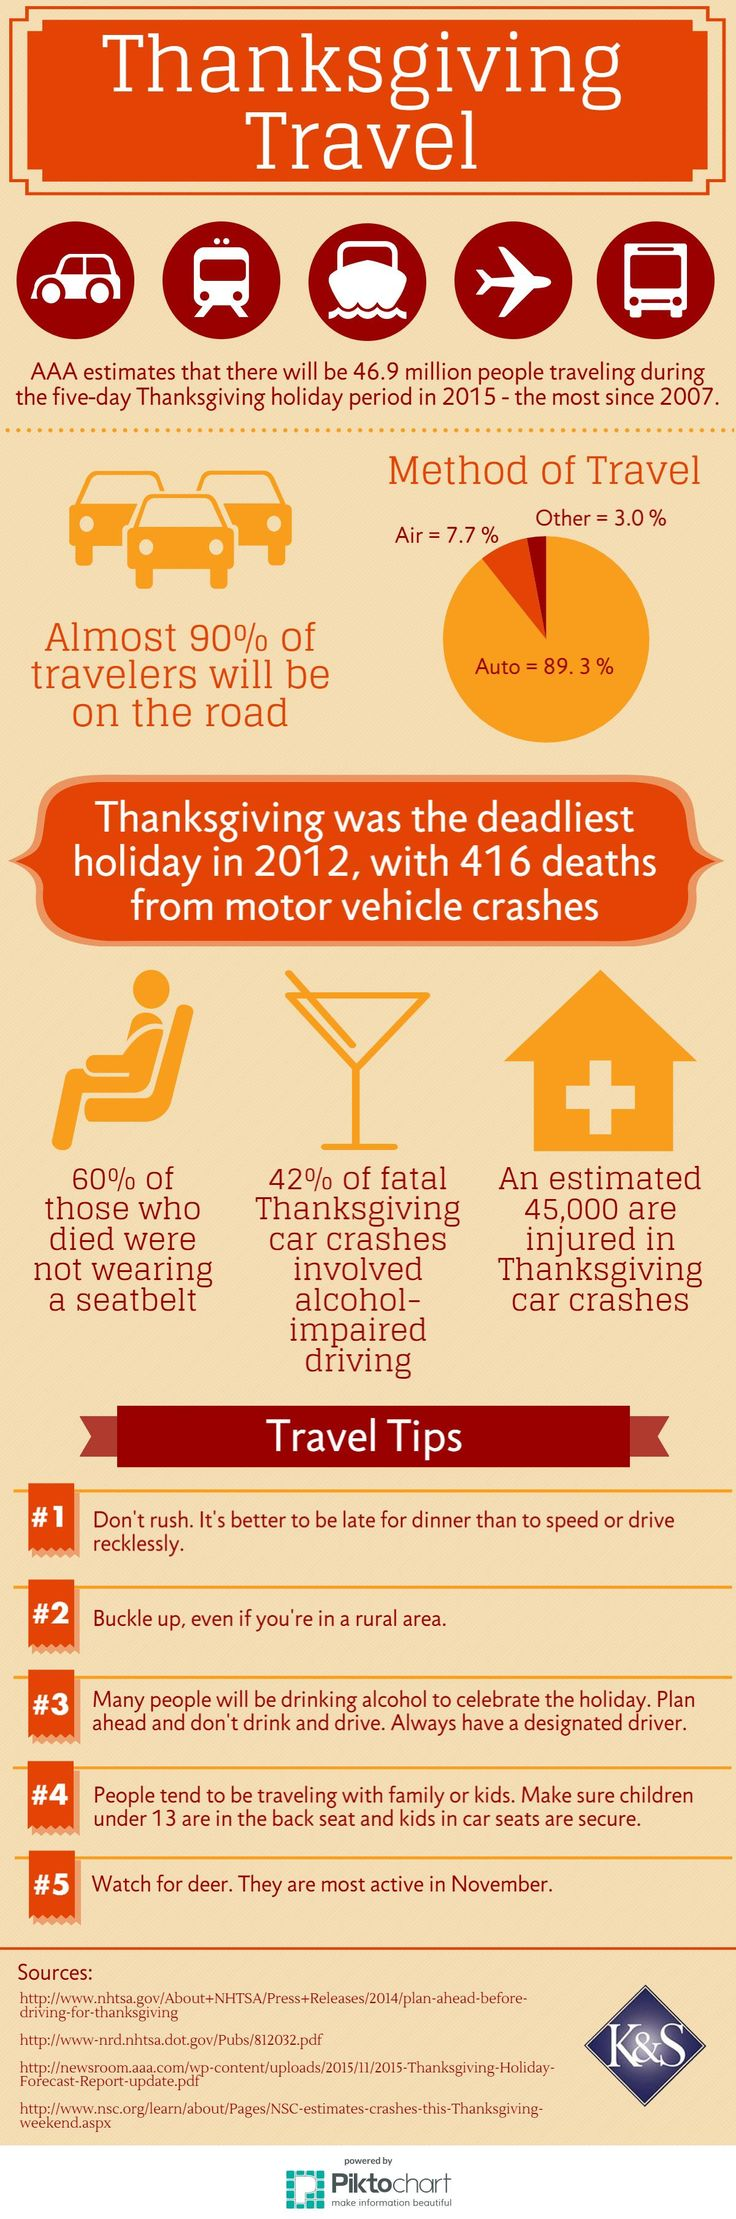 79 best images about Holiday Safety on Pinterest